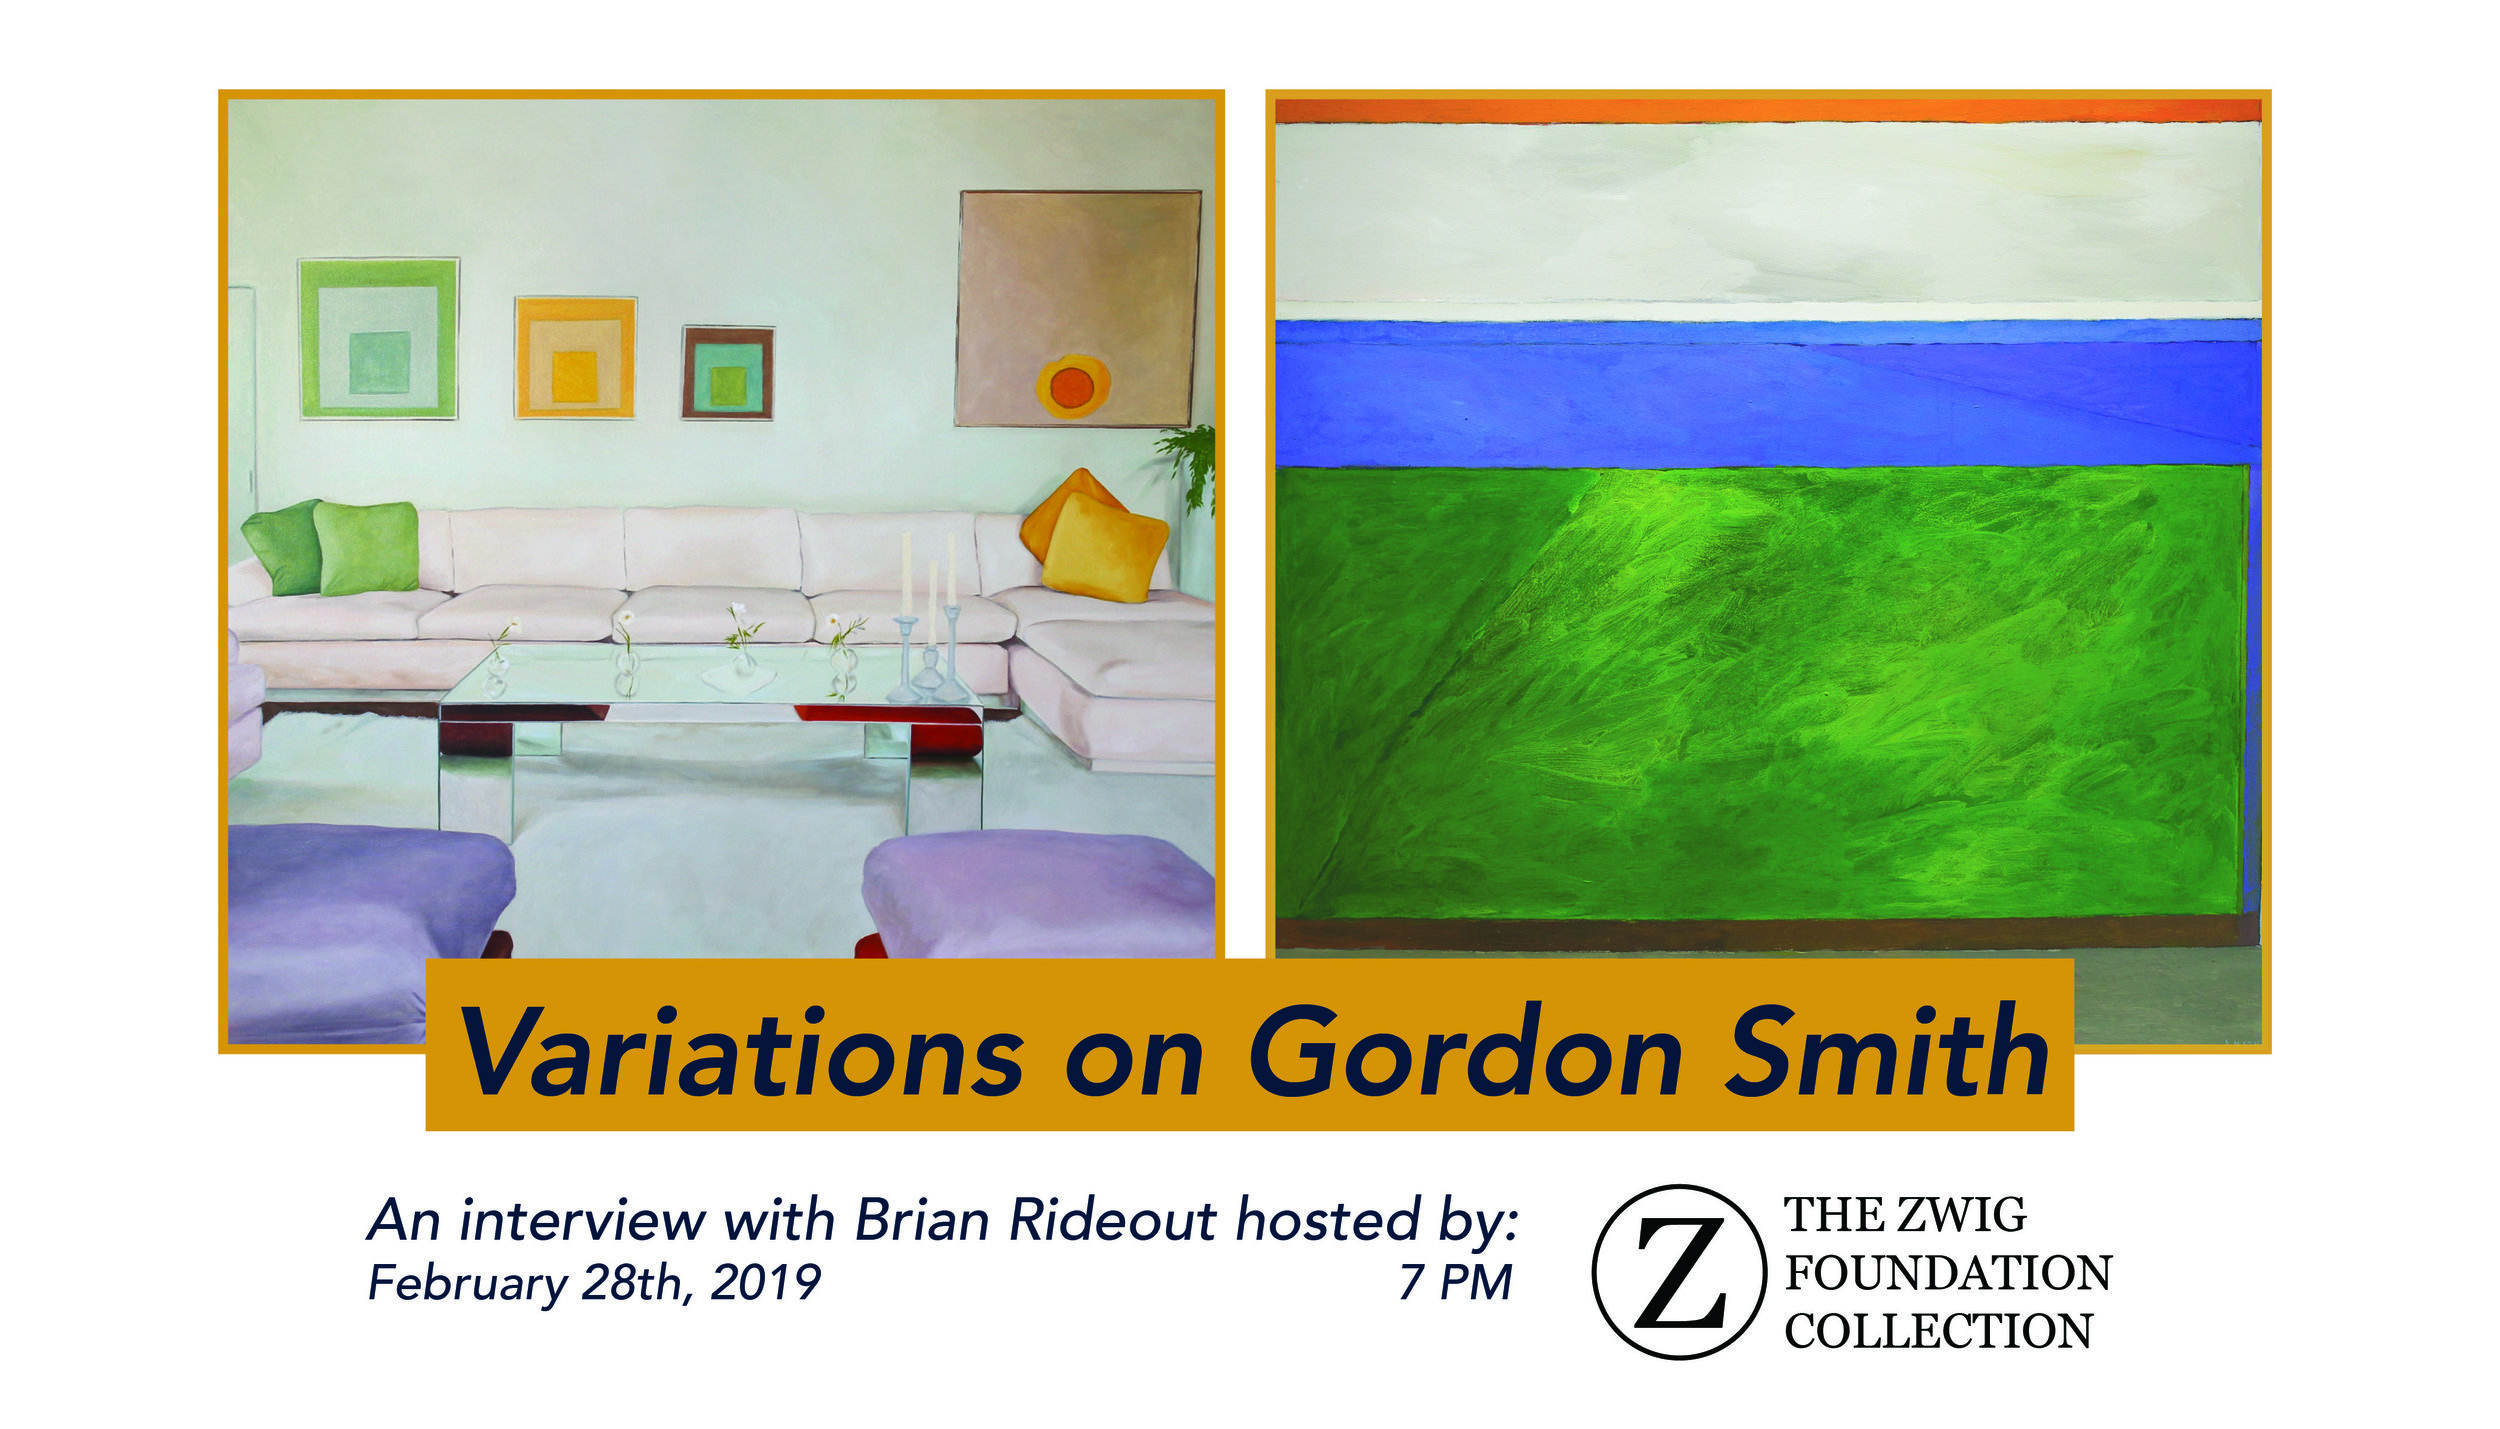 Variations on Gordon Smith - Brian Rideout is a realist painter working through traditions within art history, to create archival portraits of Mid-Century American painting and design. On February 28th, 2019, we spoke with Rideout about the work of Gordon Smith, discussing themes of collecting, art history, canonization, and abstraction vs. realism.